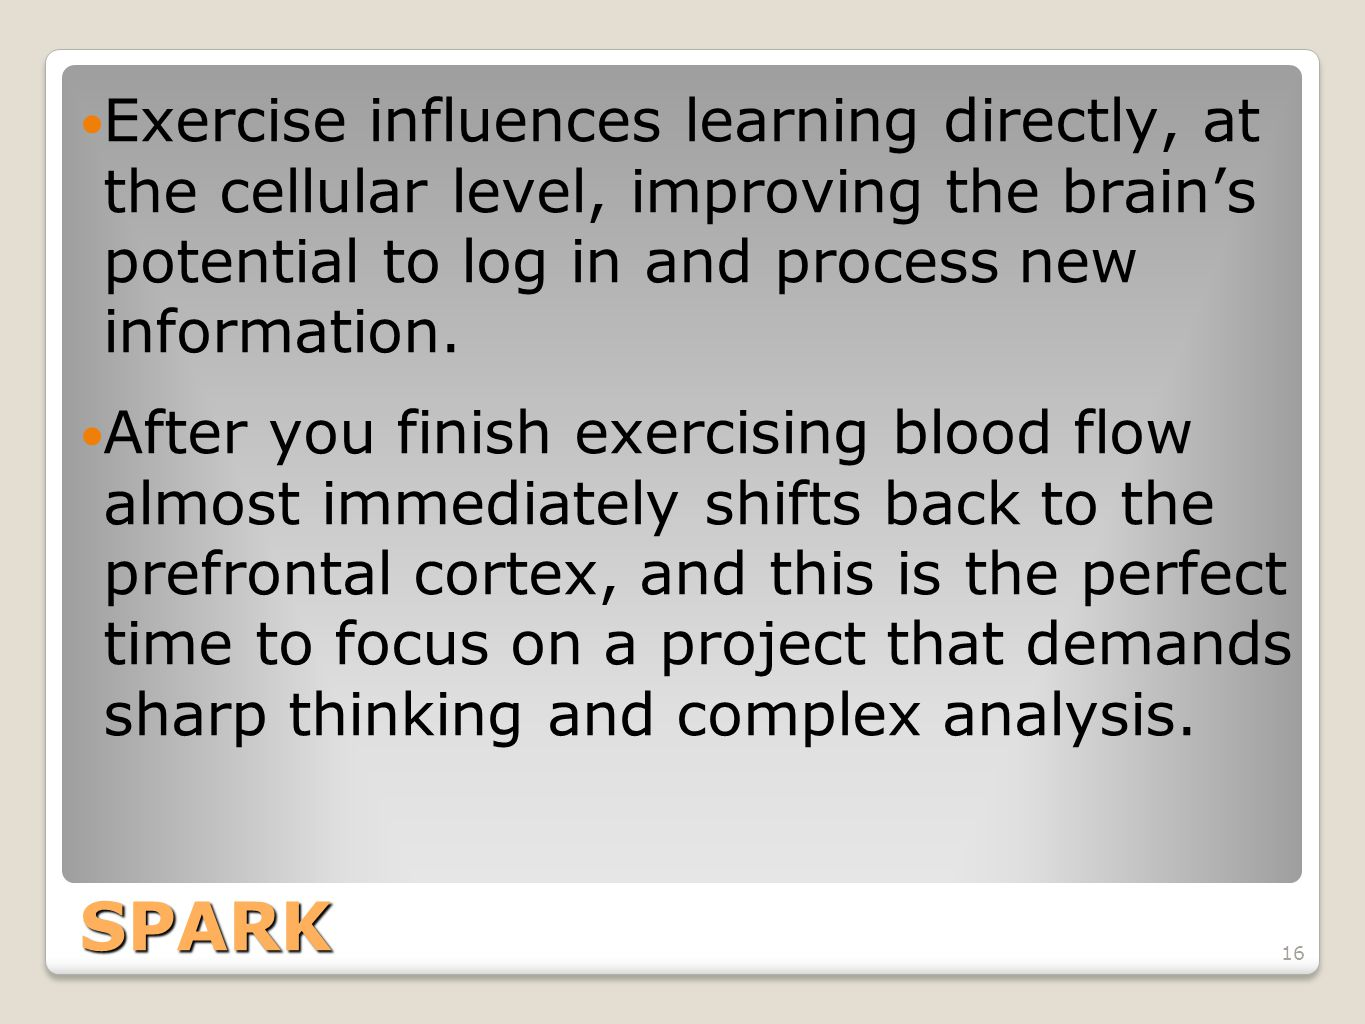 Exercise influences learning directly, at the cellular level, improving the brain's potential to log in and process new information.